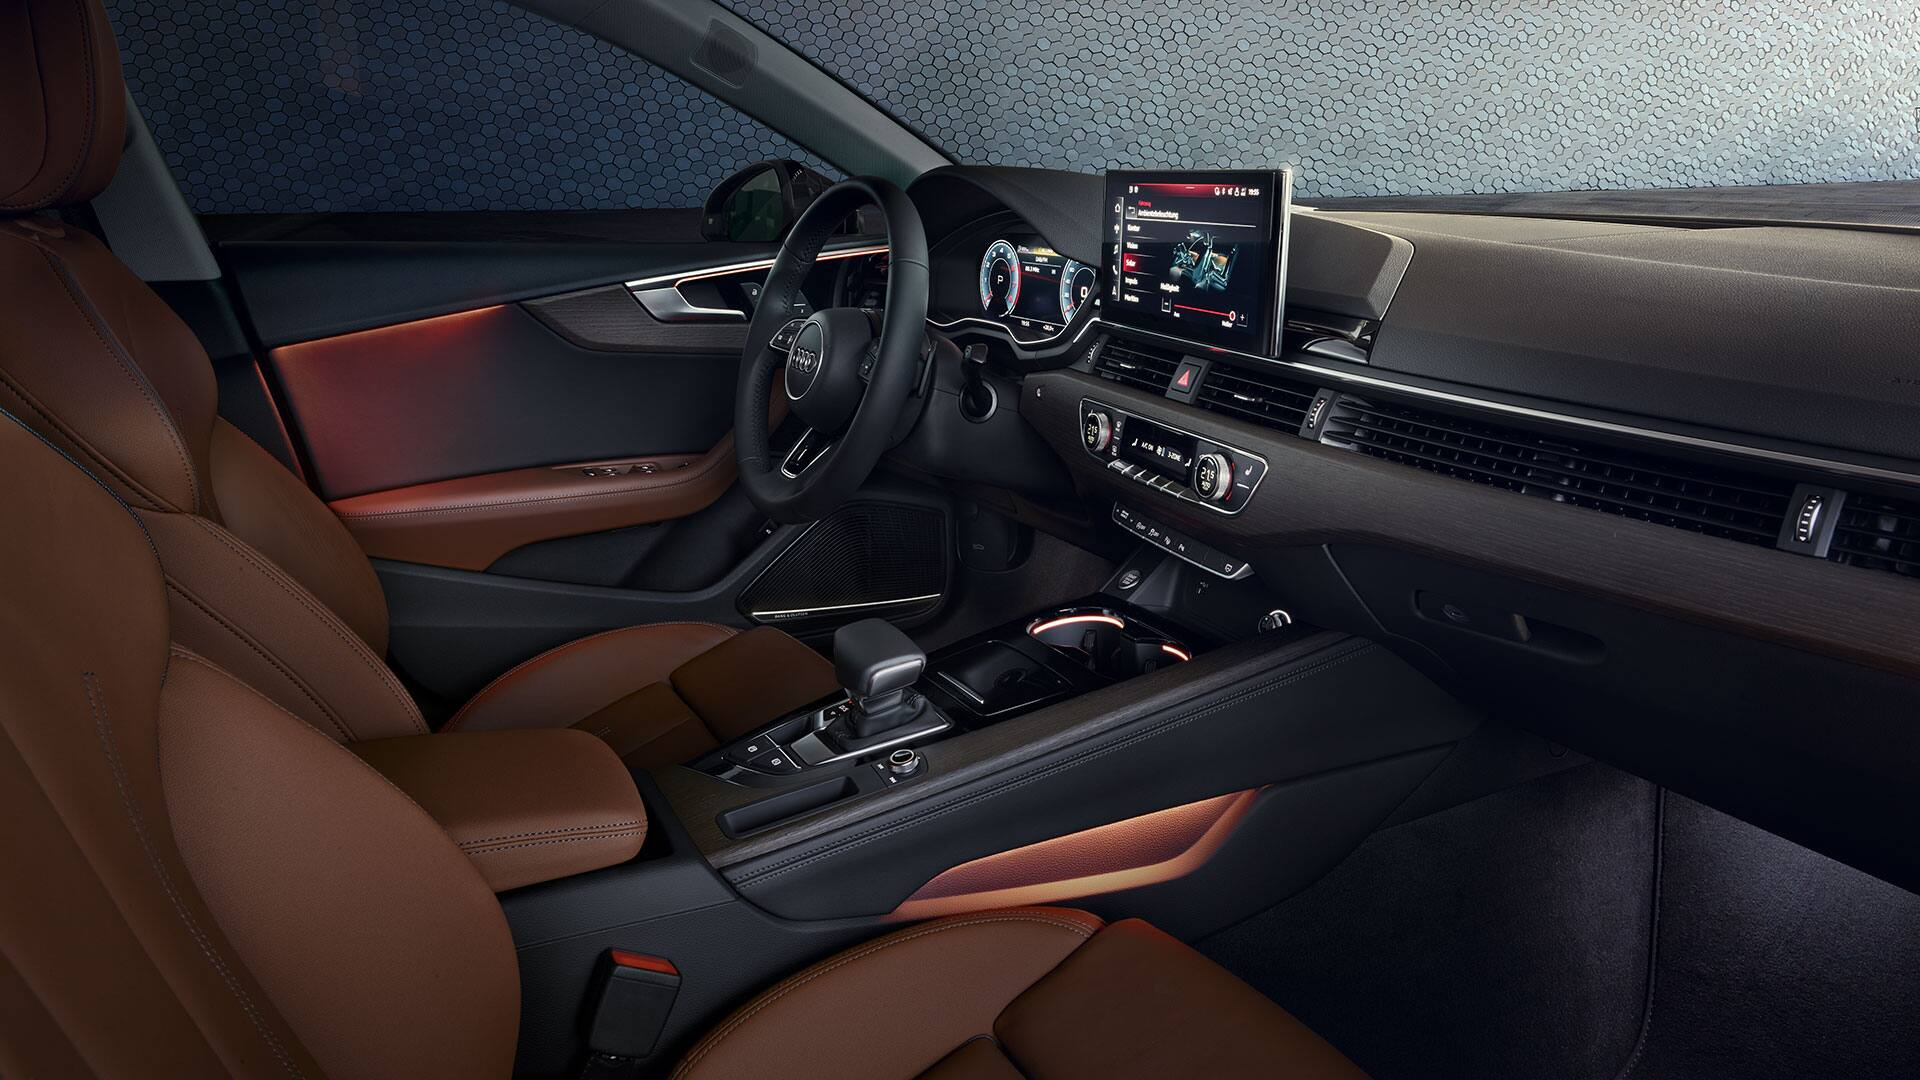 Interior design in the Audi A5 Coupé